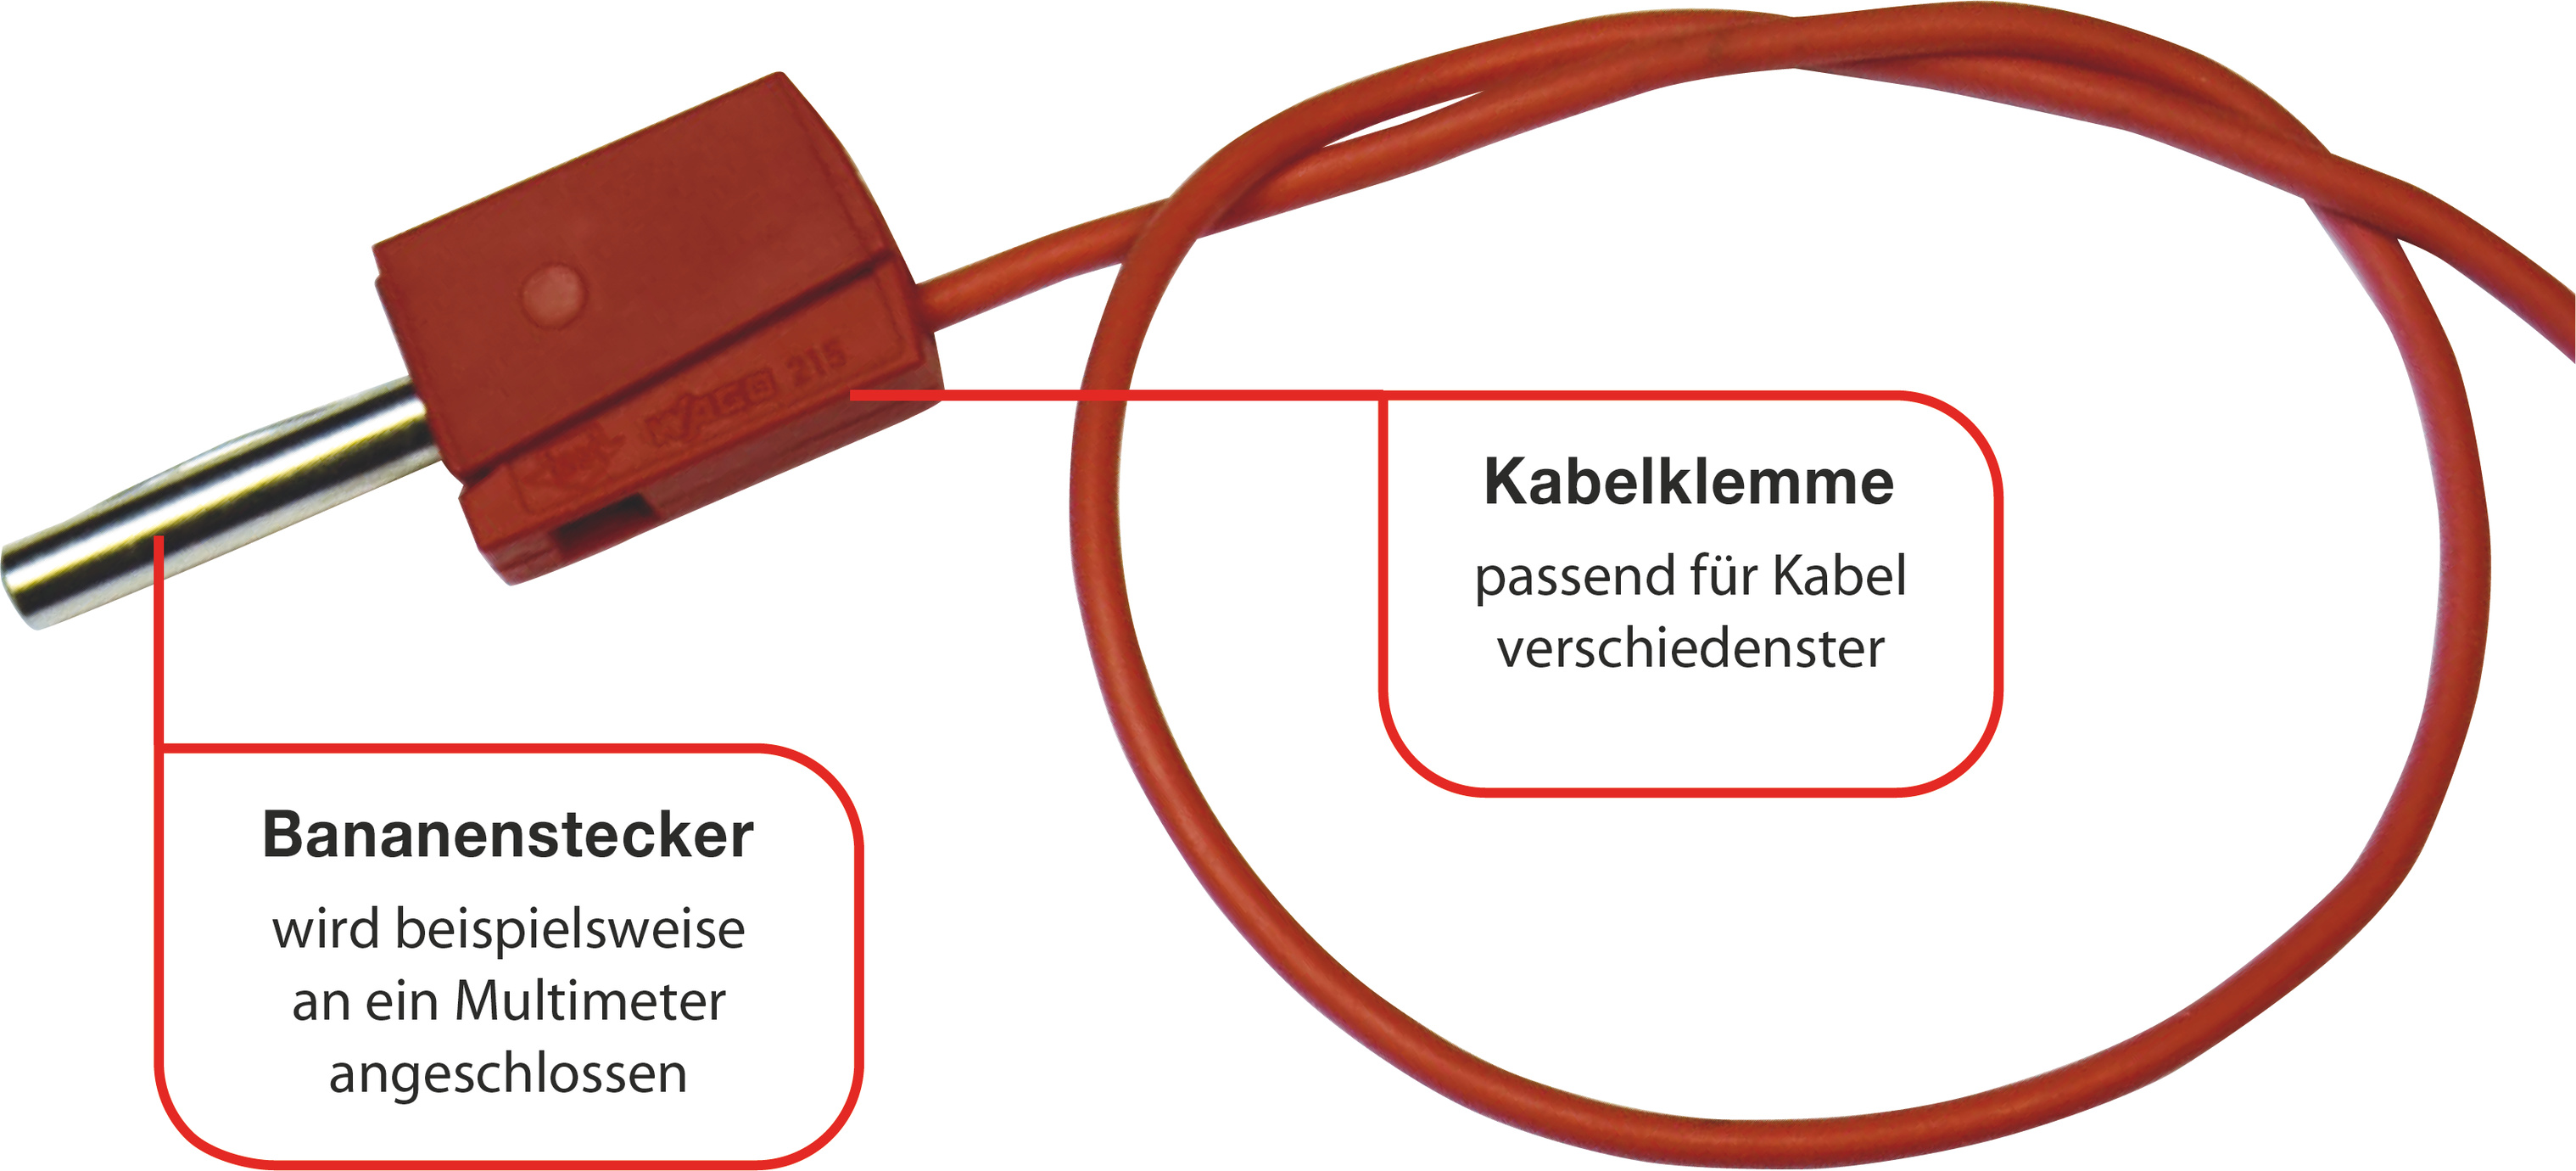 Kabelklemme mit Bananenstecker | Make Magazin | Heise Select